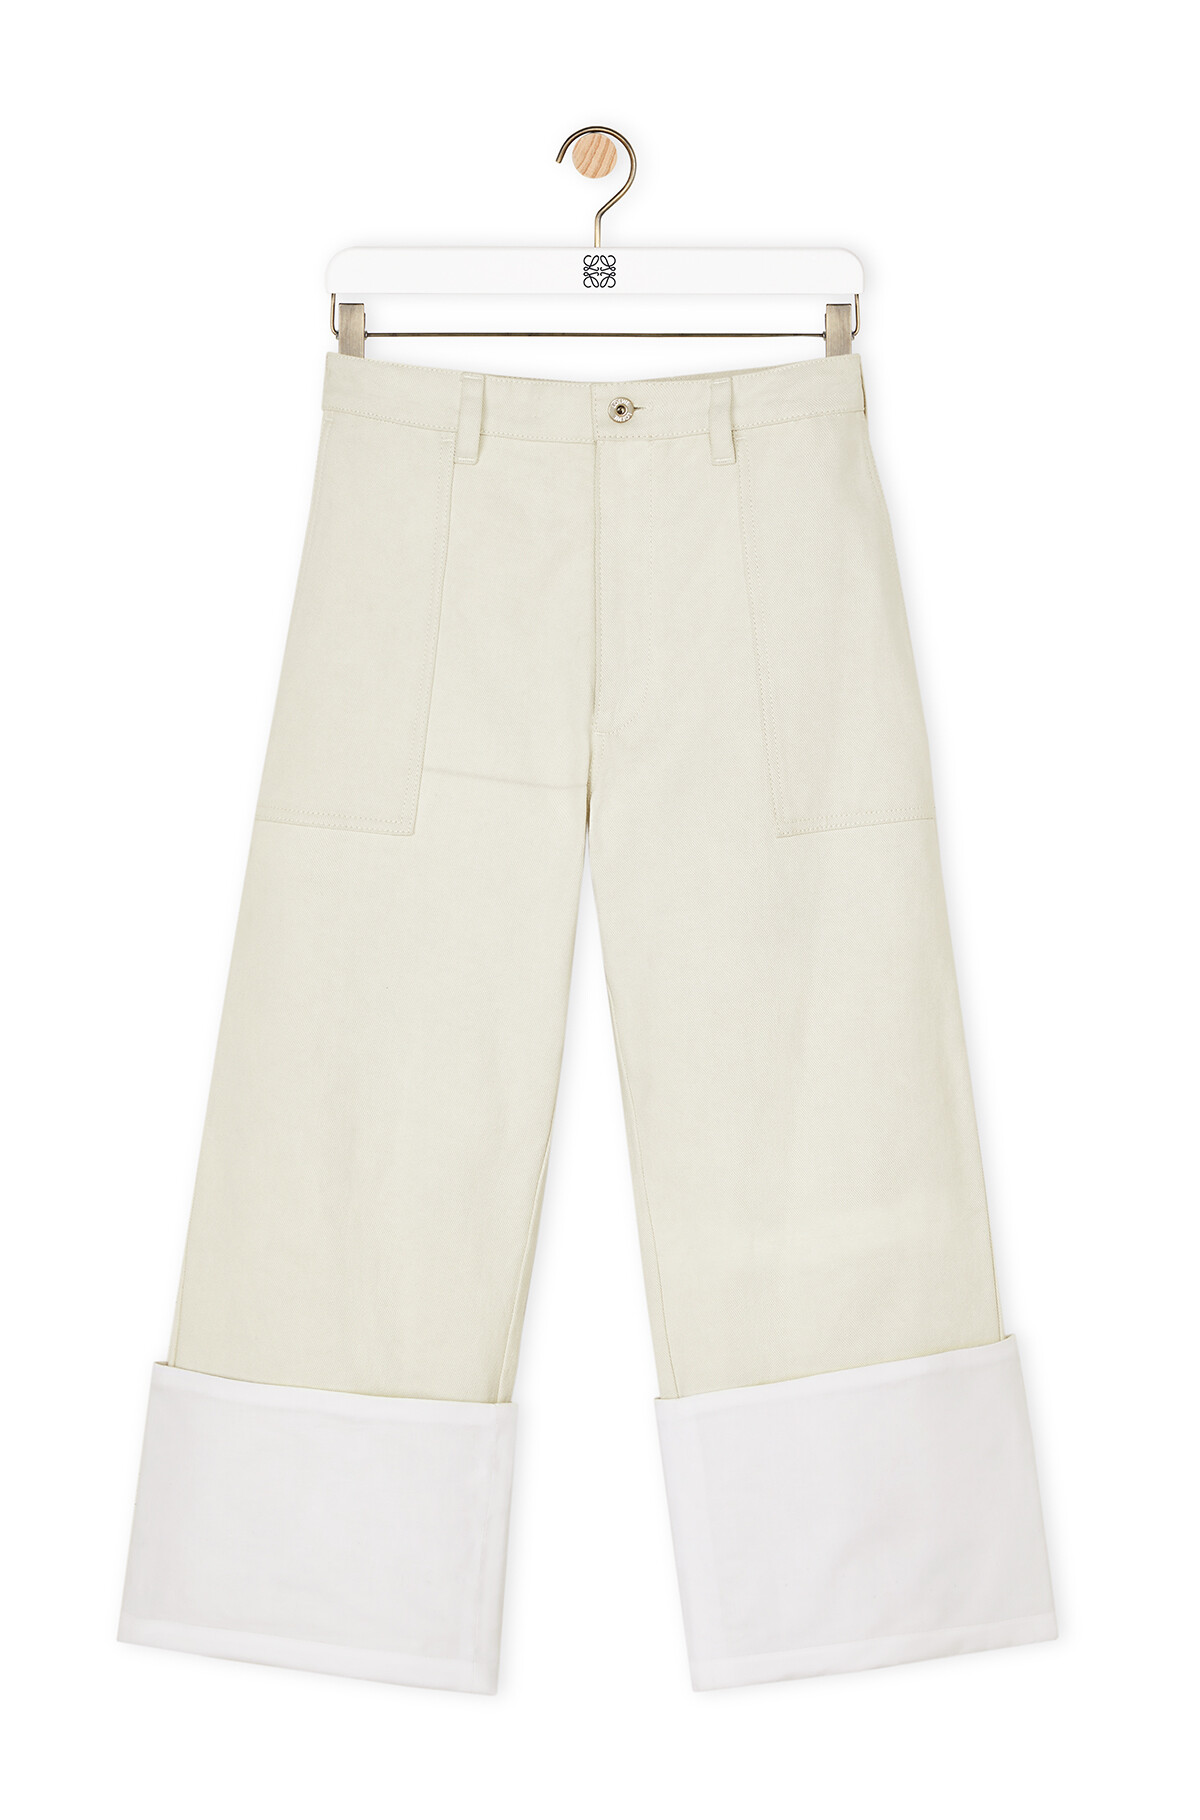 LOEWE Turn Up Patch Pocket Trousers 白 front